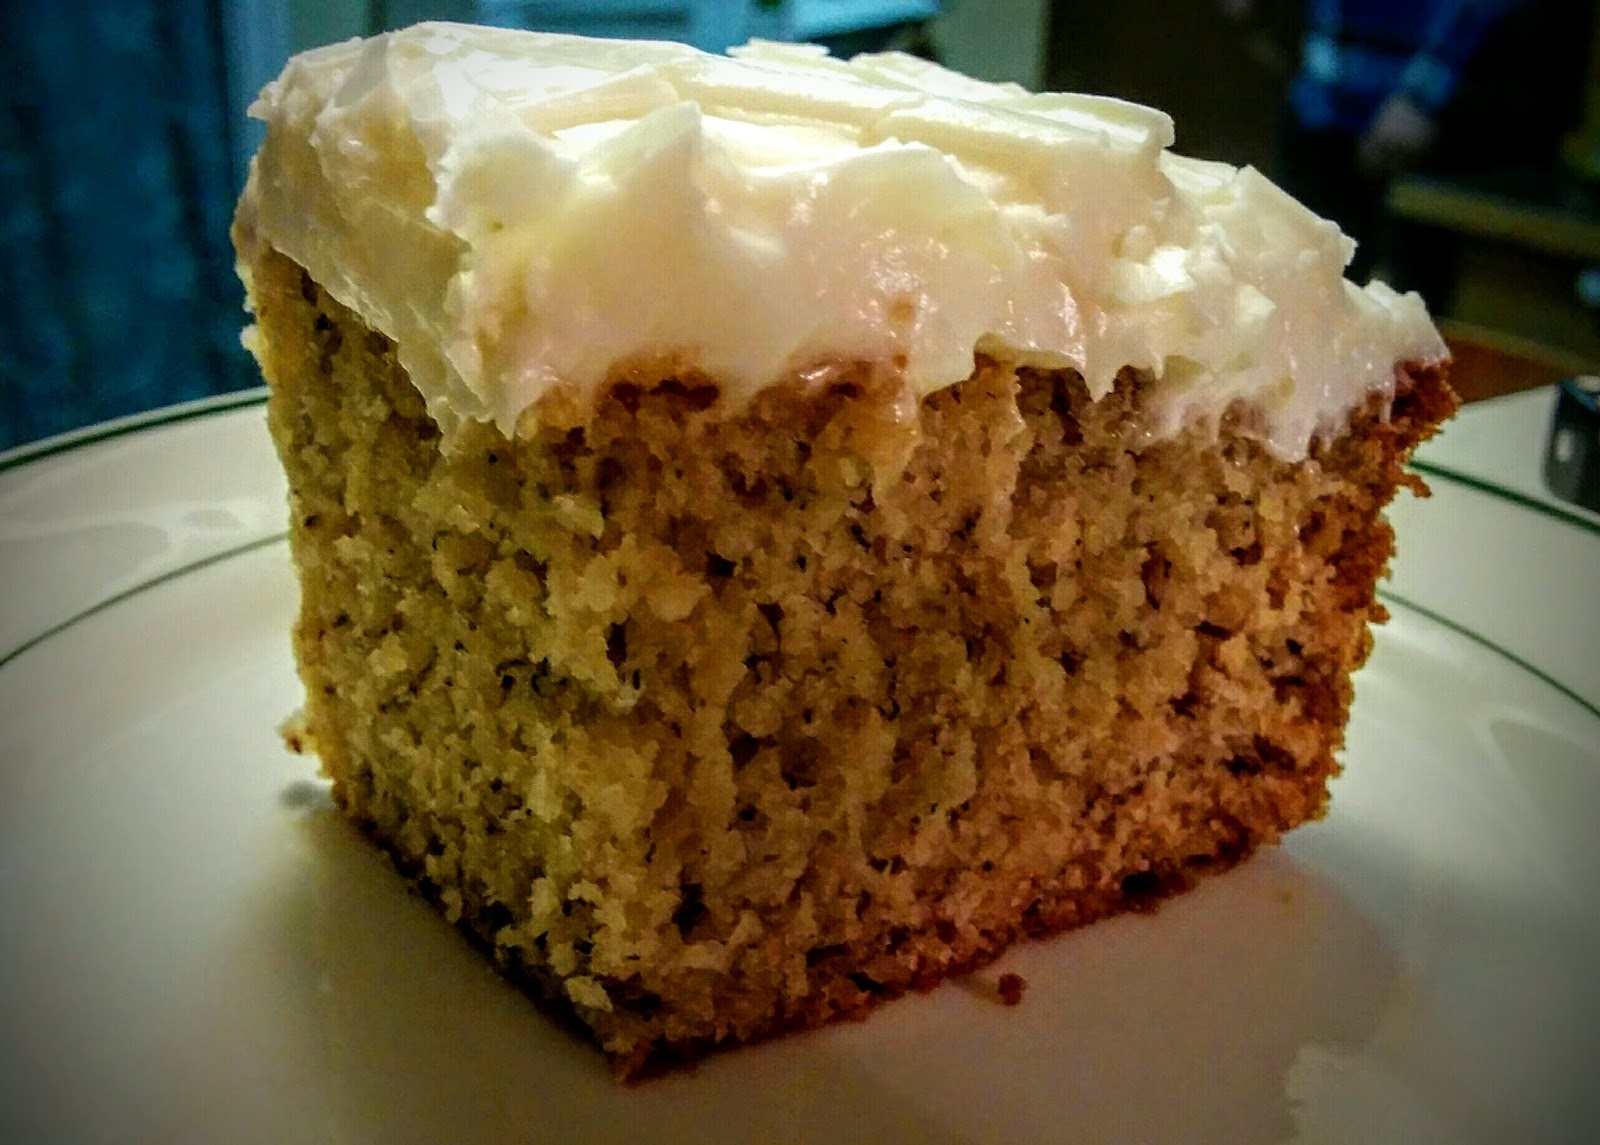 banana cake with cream cheese frosting This homemade banana cake with vanilla frosting is made totally  a snack cake without the frosting like cream cheese  made banana cake all the time.